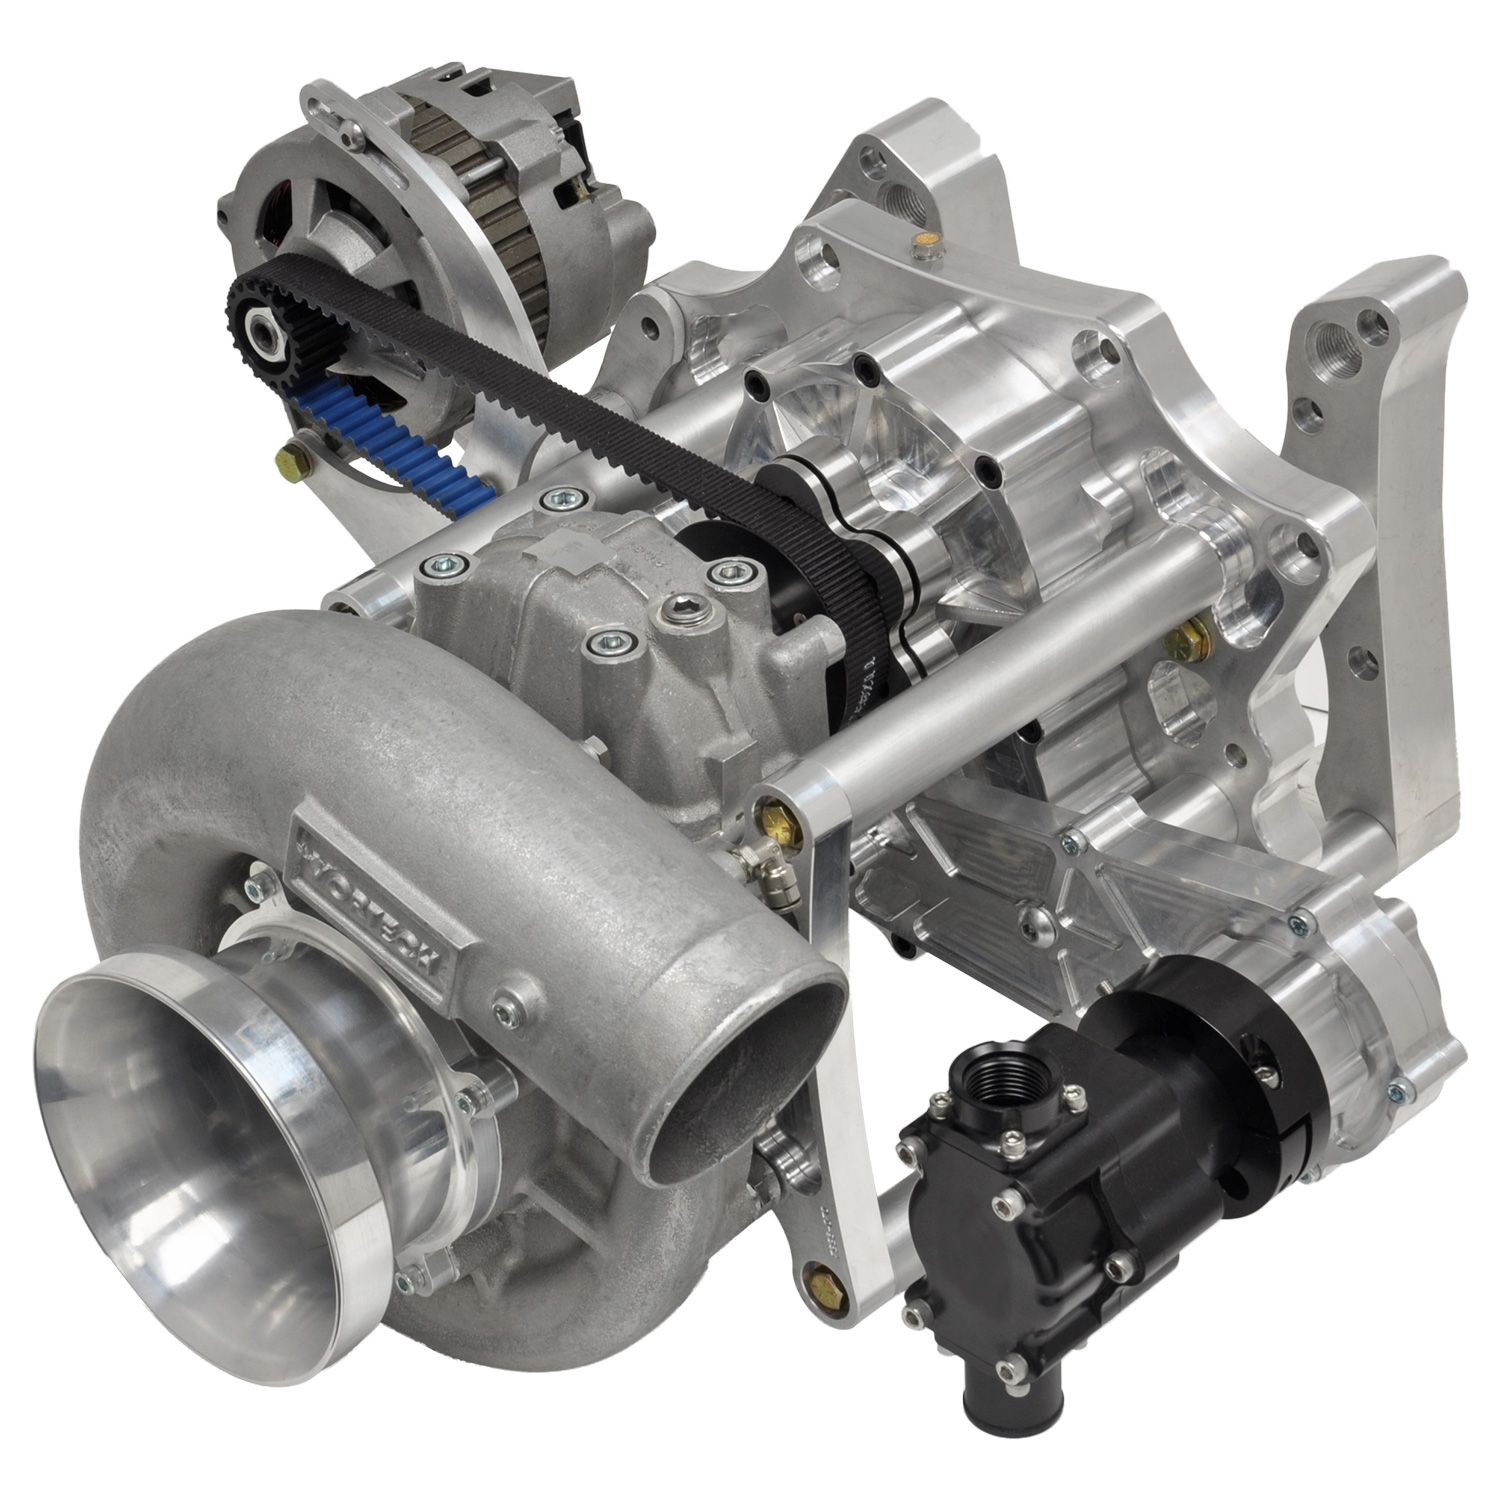 Component Drive Systems (CDS)aluminum supercharger drives